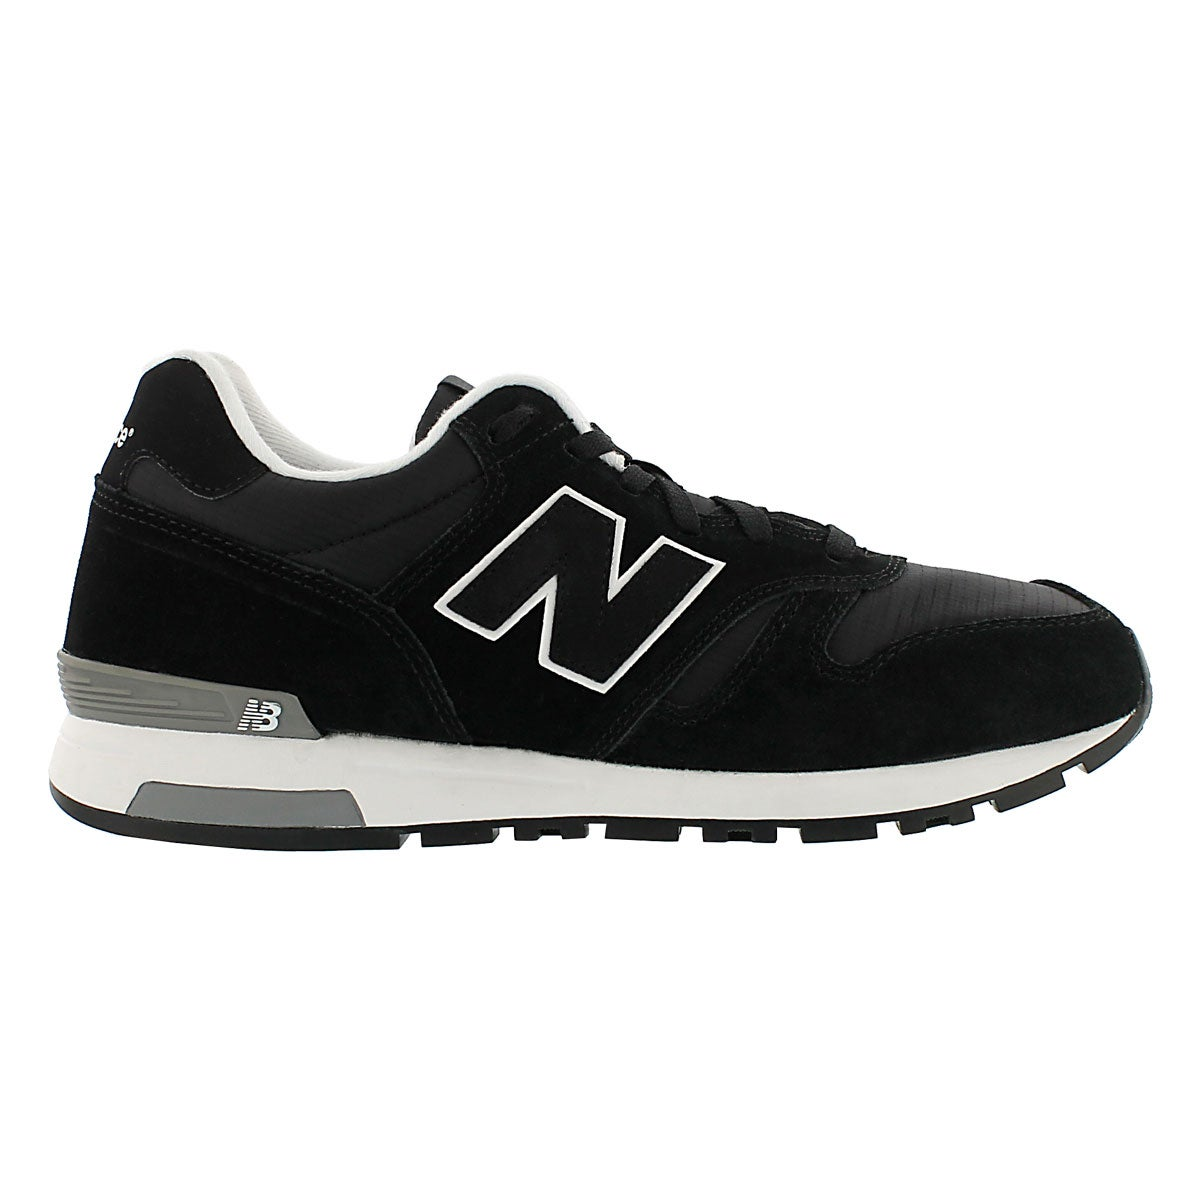 Mns 565 black lace up running shoe